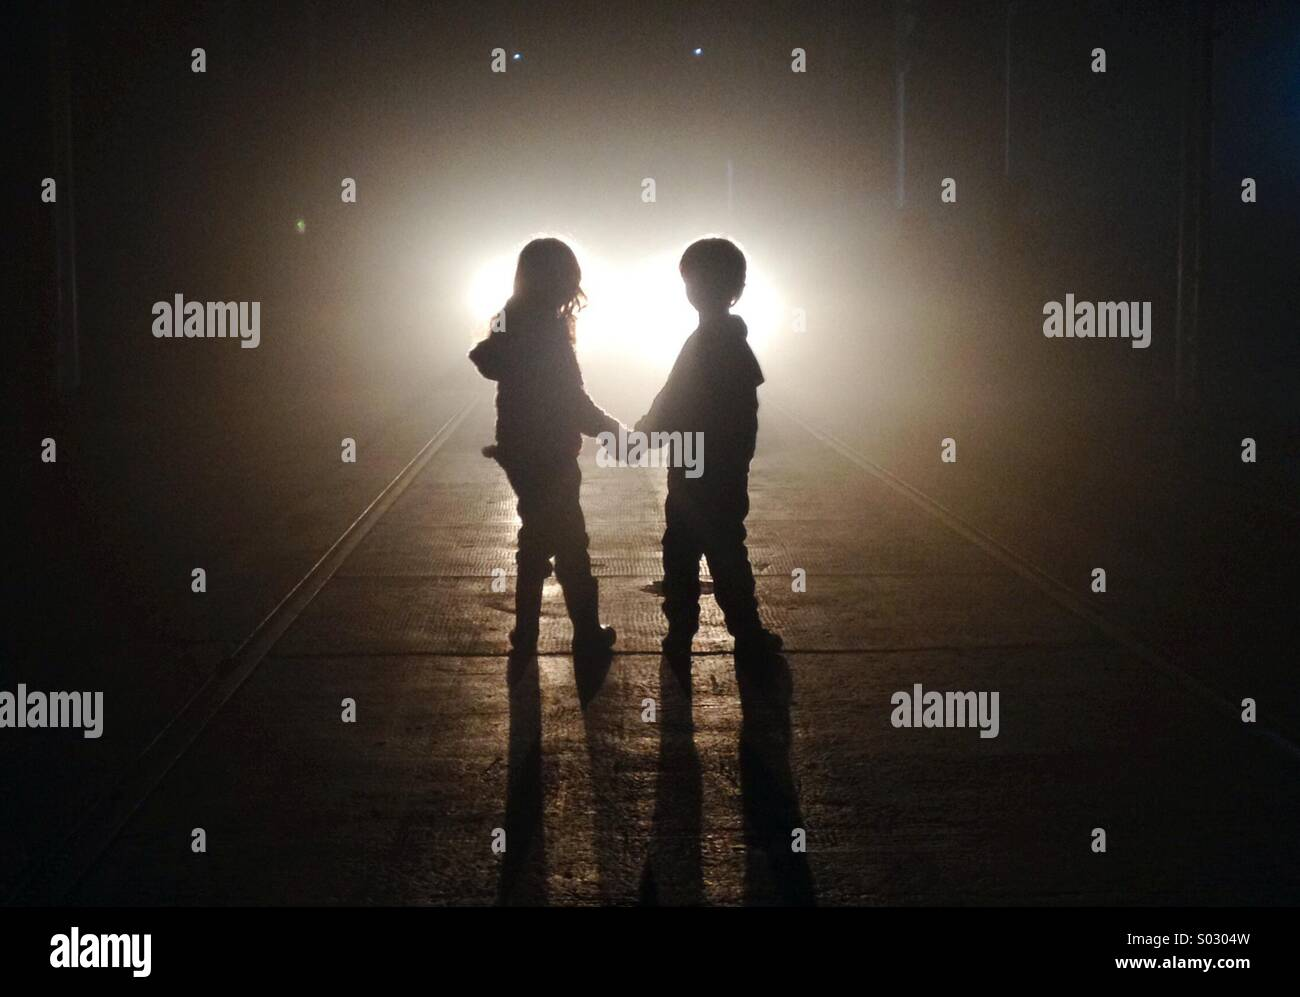 A young boy and girl hold hands, silhouetted against a bright light. - Stock Image